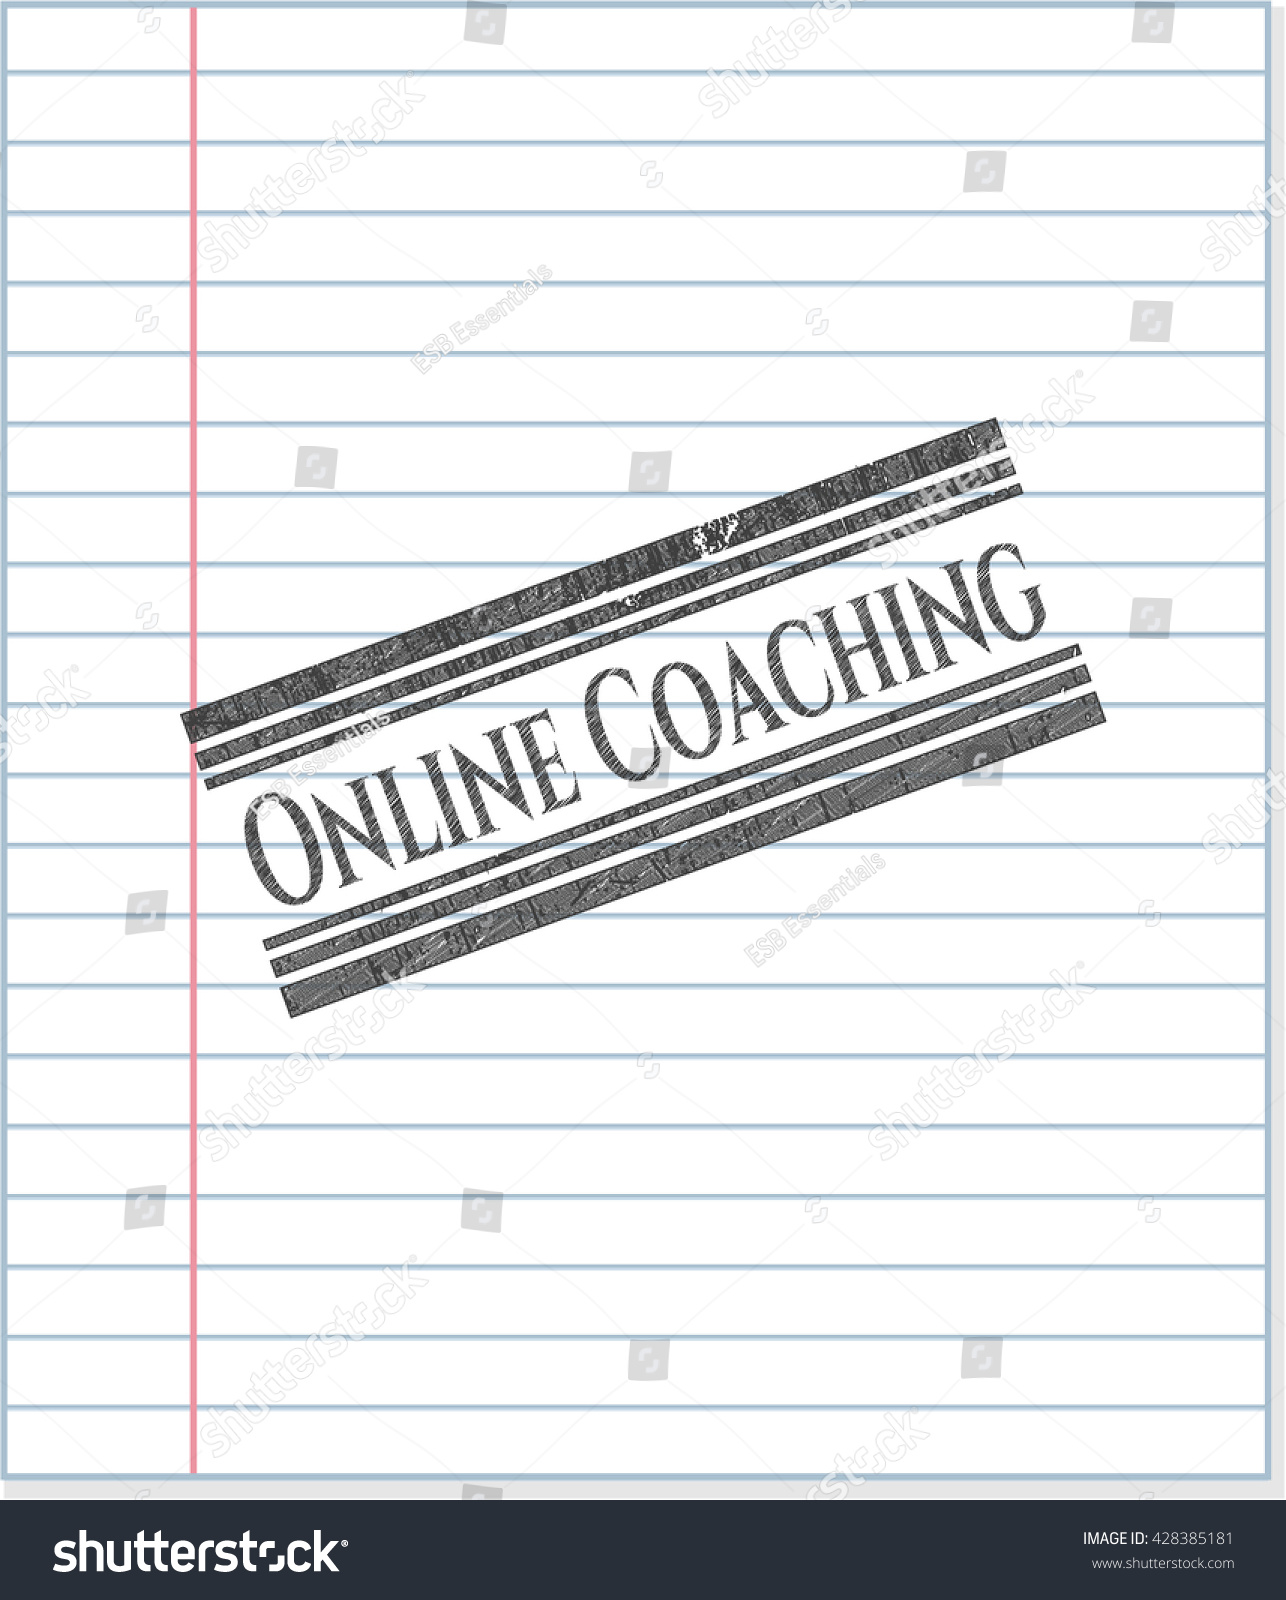 Online coaching pencil draw